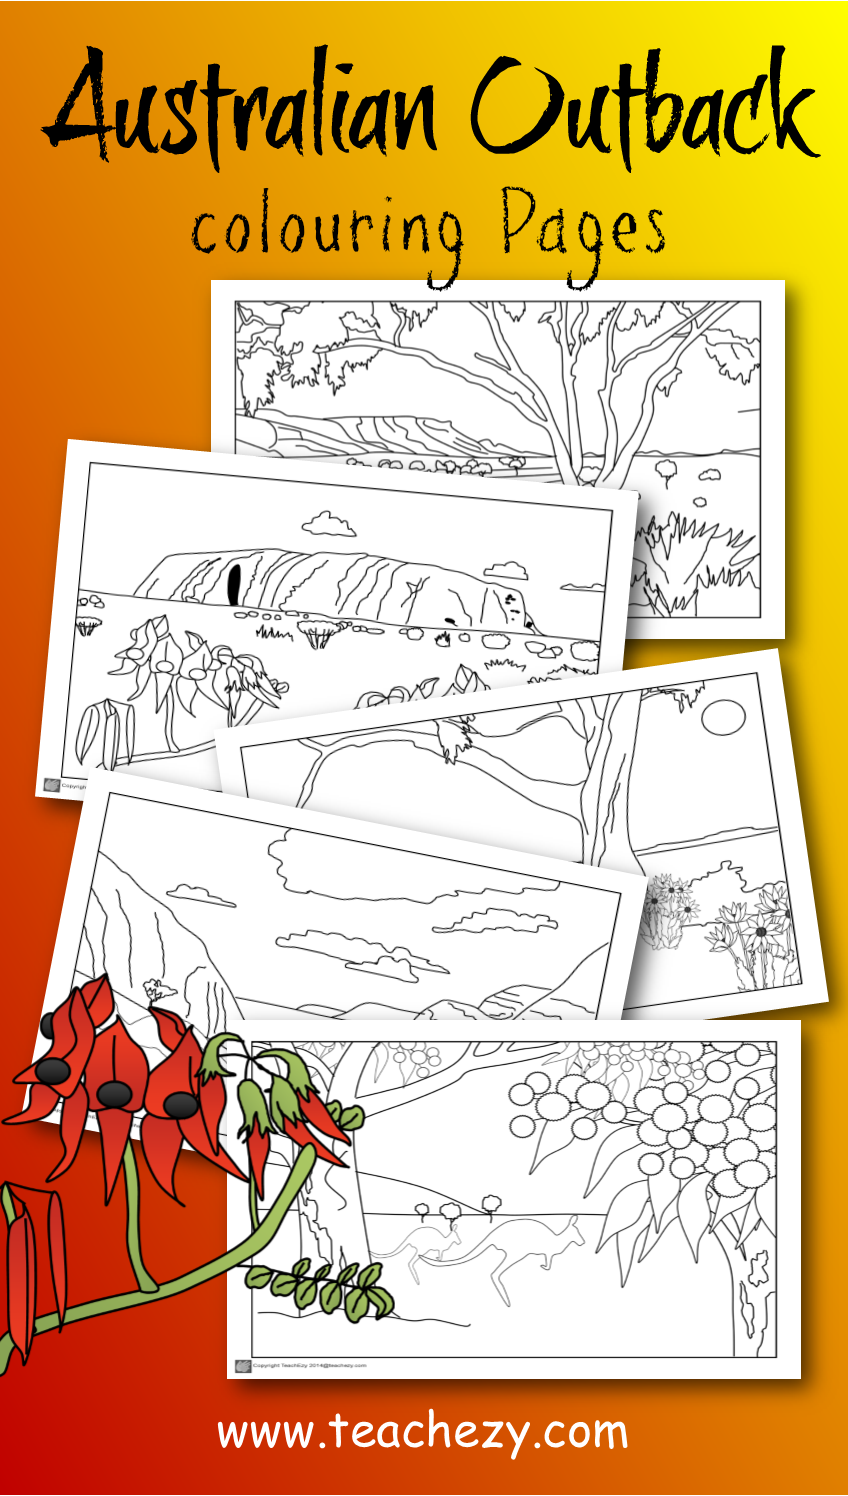 Kangaroo colouring page 2 - Australian Outback Colouring Pages Includes Uluru Macdonnell Ranges Flannel Flowers Sturt